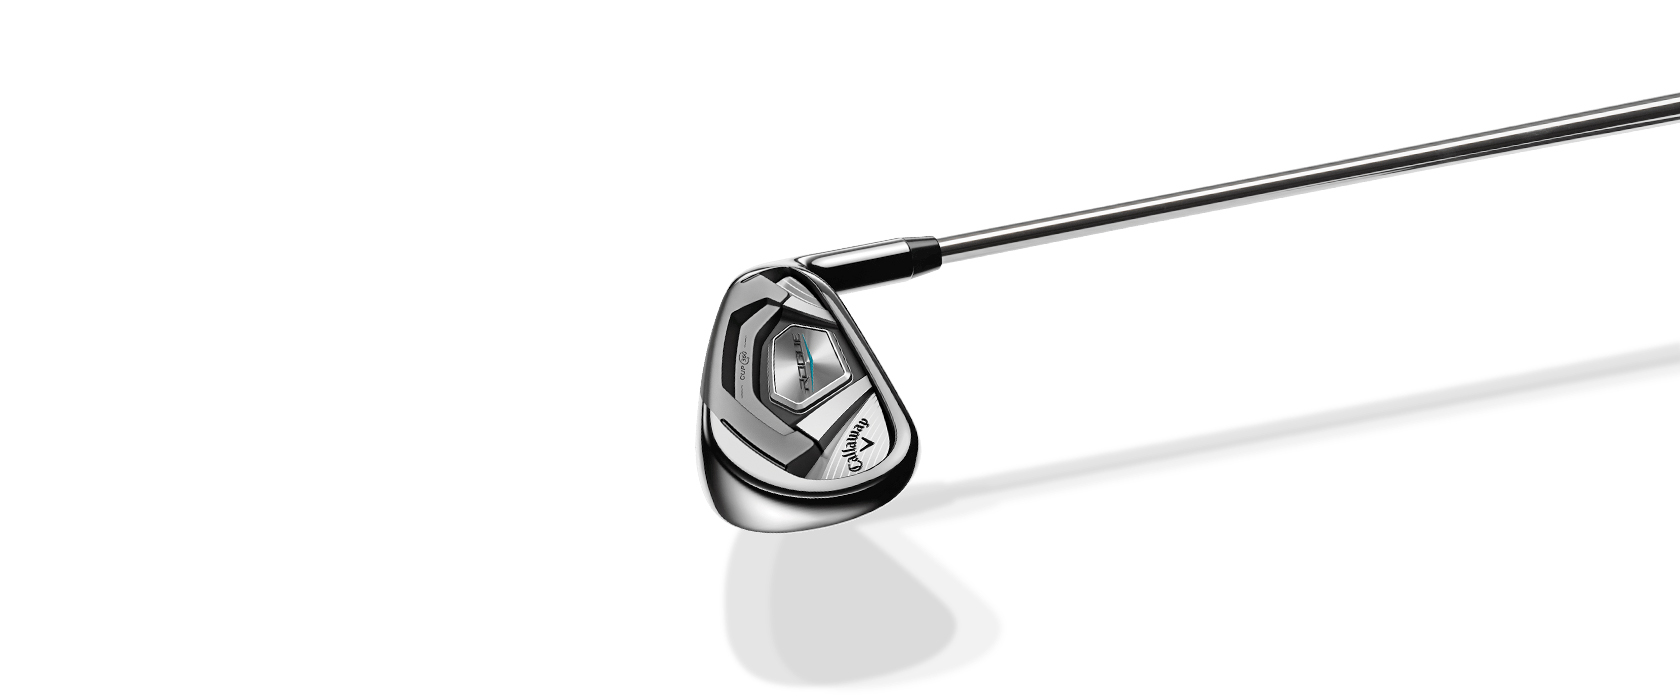 iron anniversary gifts rogue golf iron callaway